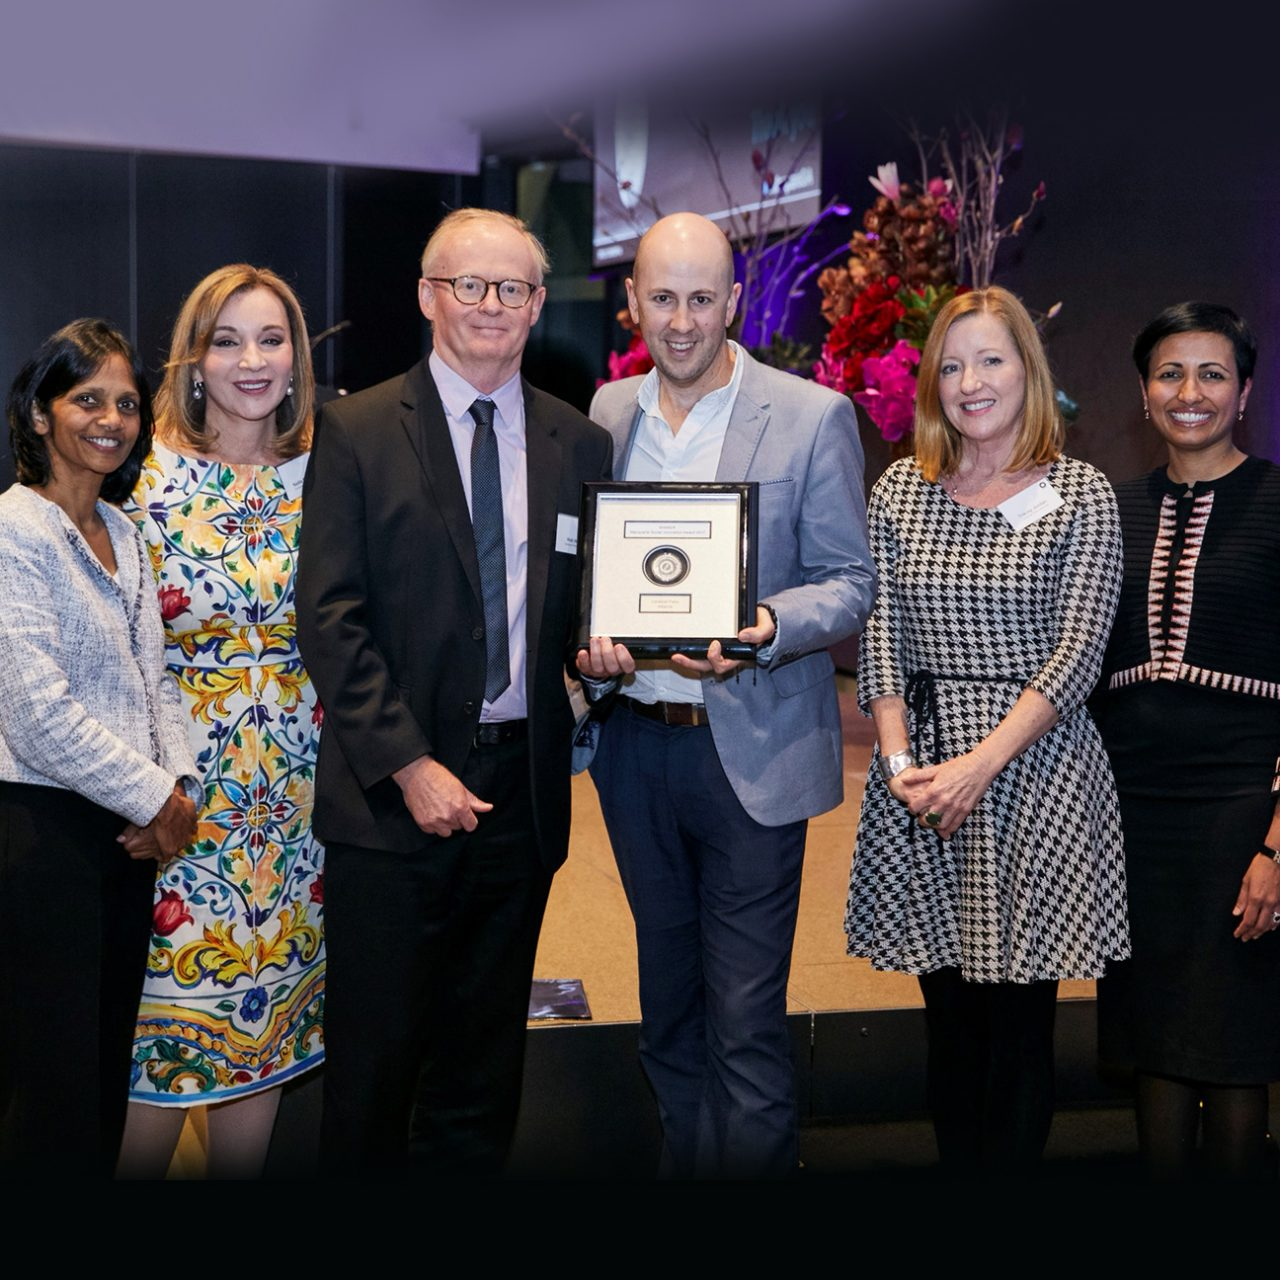 From left to right: Shemara Wikramanayake (Macquarie Group Foundation), Professor Nadia Badawi, Rob White, Peter Horsley, Tracey Jordan (Cerebral Palsy Alliance) and Lisa George (Macquarie Group Foundation)